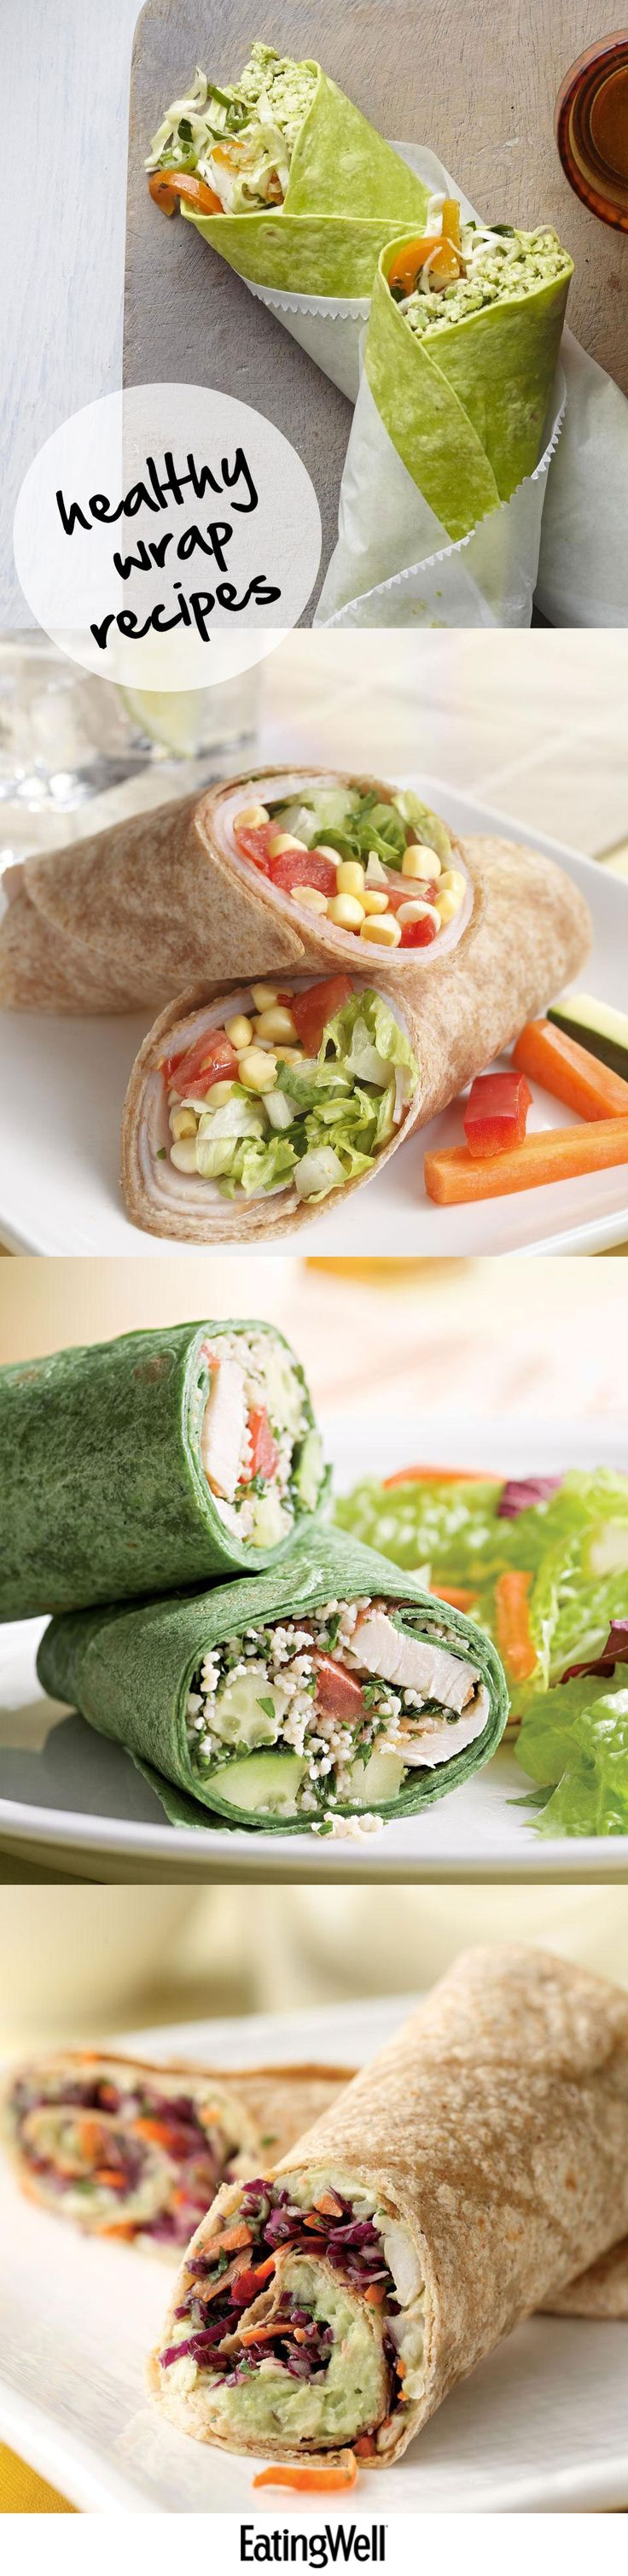 Healthy wrap recipes under 500 calories. Perfect for a healthy lunch.